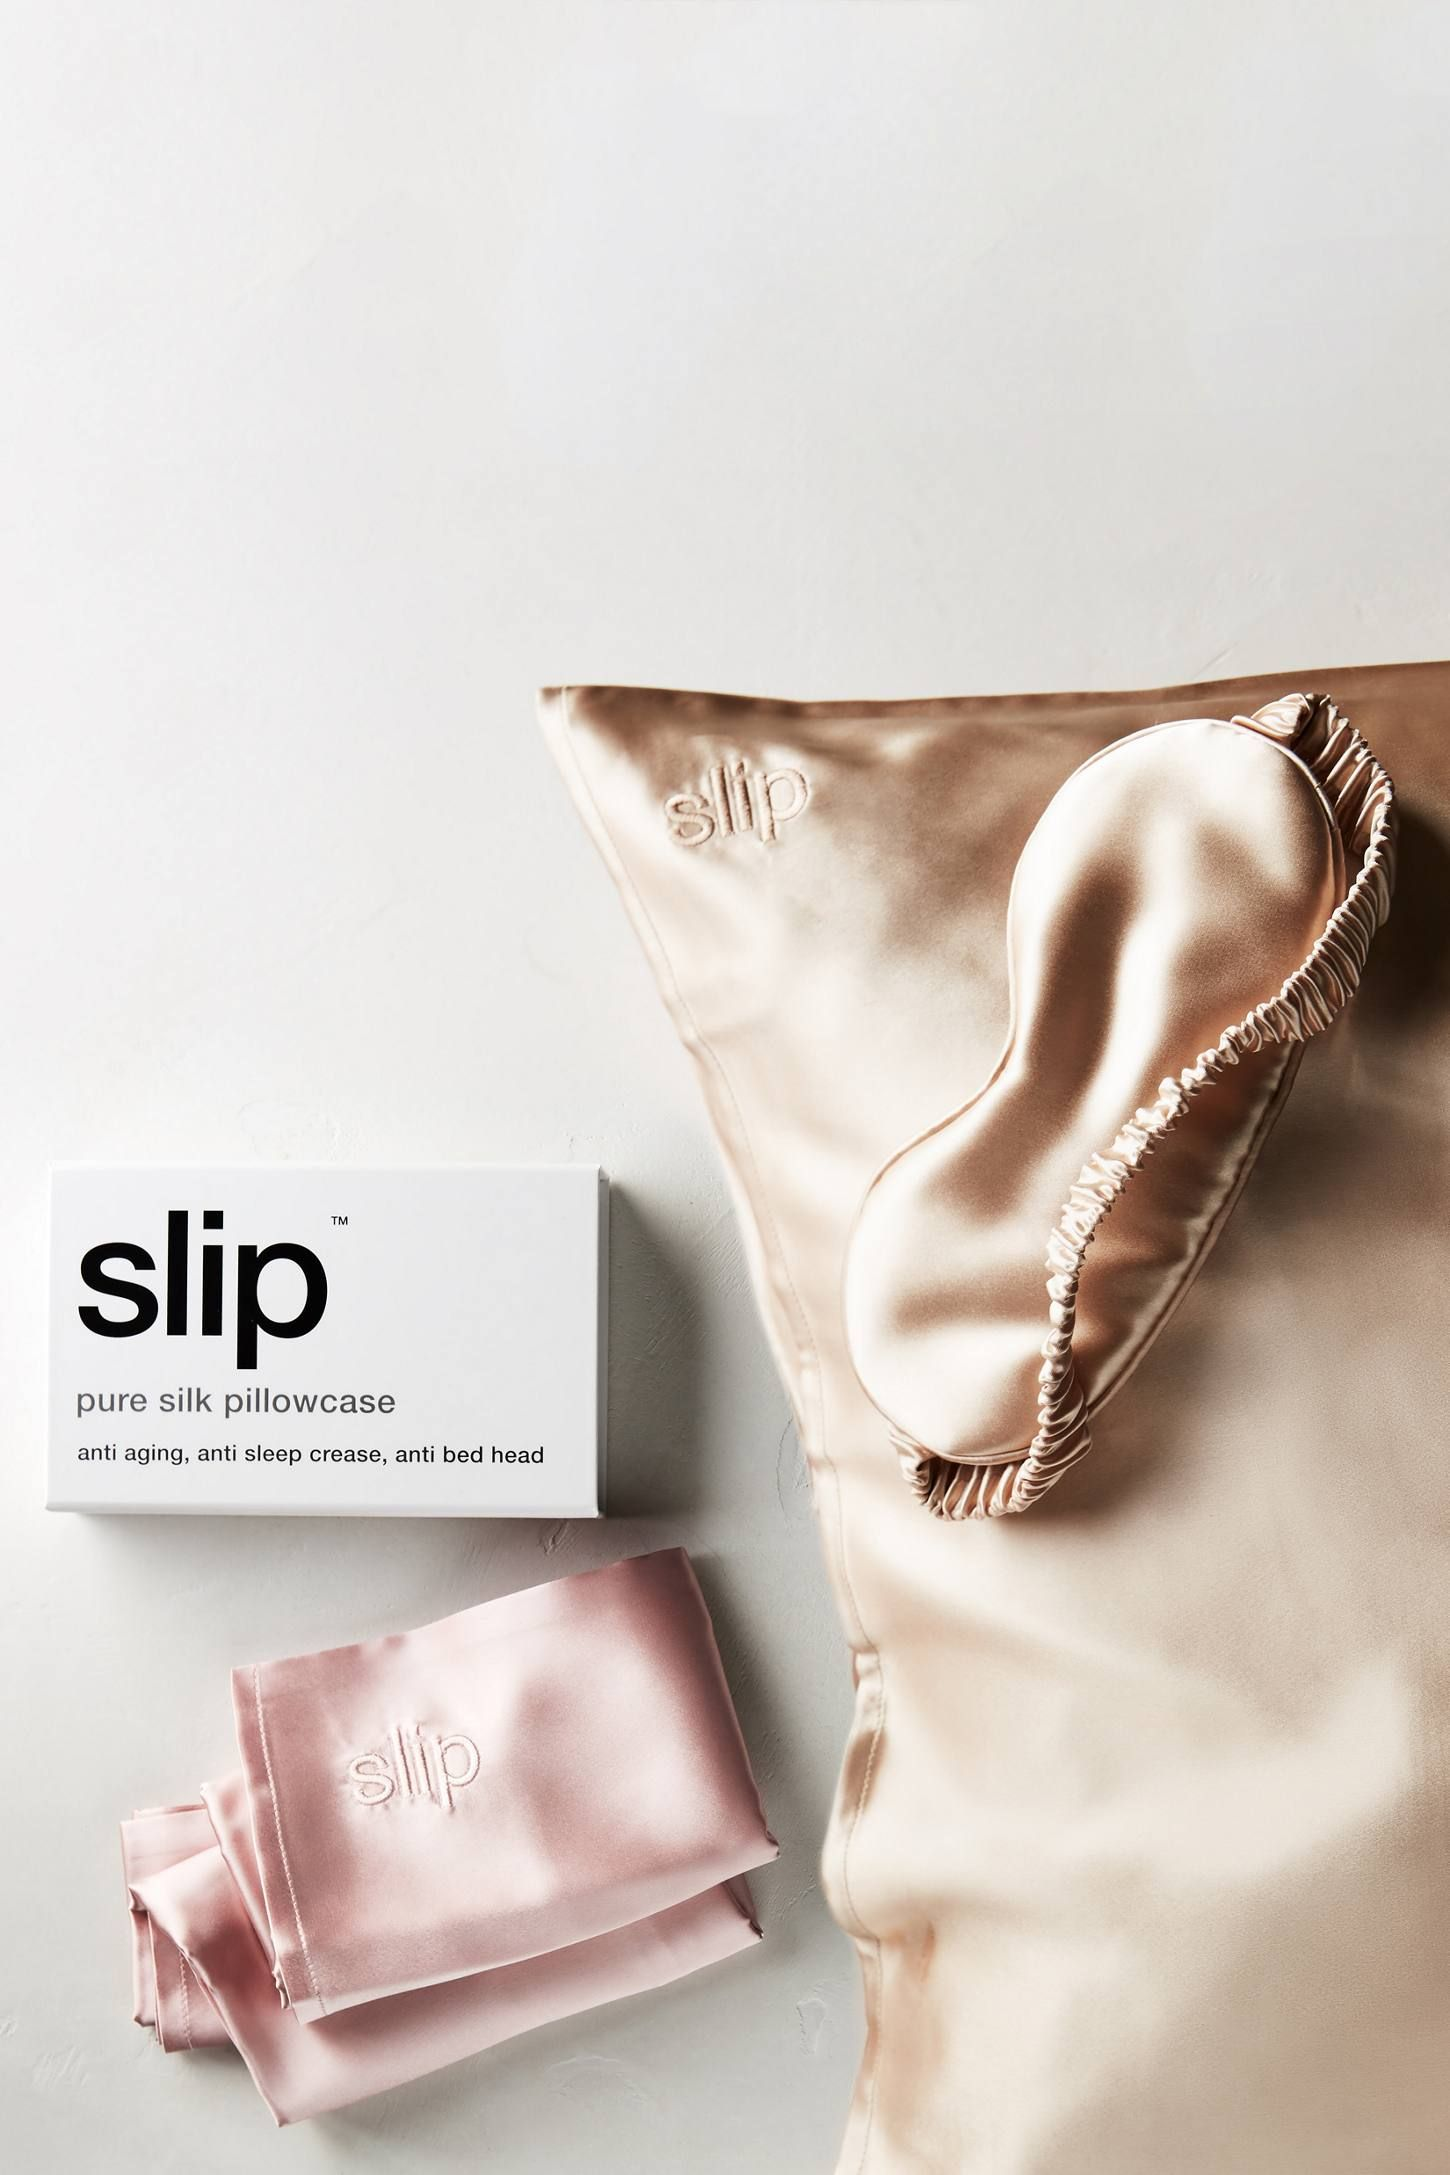 Slip Pillowcase Review Inspiration Slip Silk Sleep Mask  Anthropologie Masking And Silk Decorating Inspiration